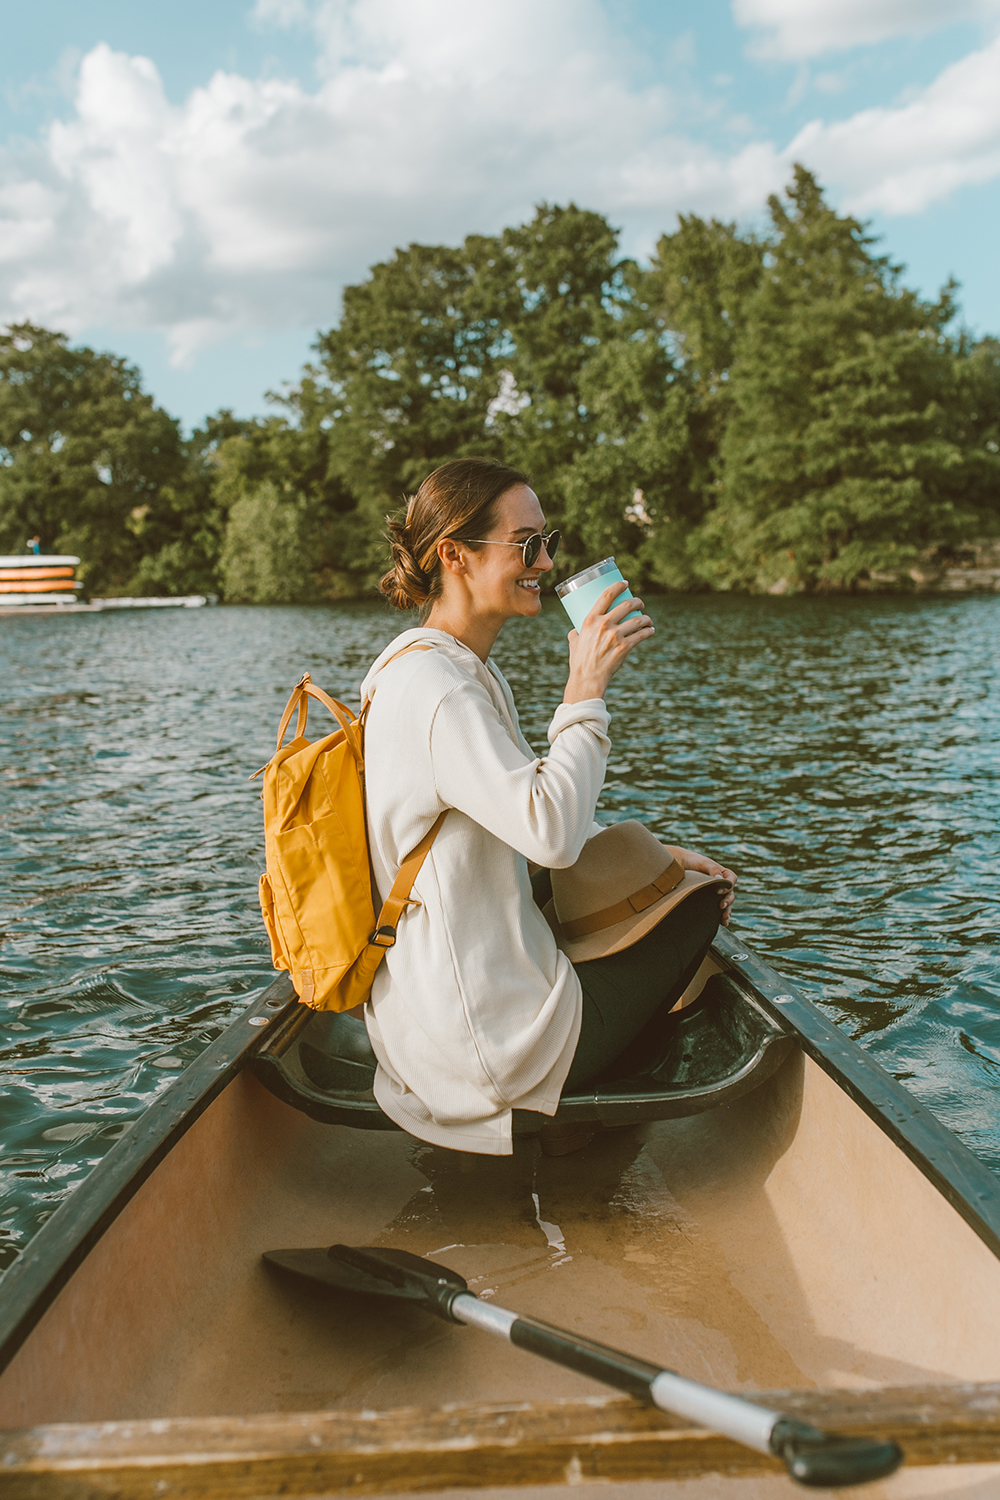 livvyland-blog-olivia-watson-canoe-lady-bird-lake-austin-texas-lifestyle-fashion-blogger-backcountry-patagonia-tunic-yeti-rambler-1